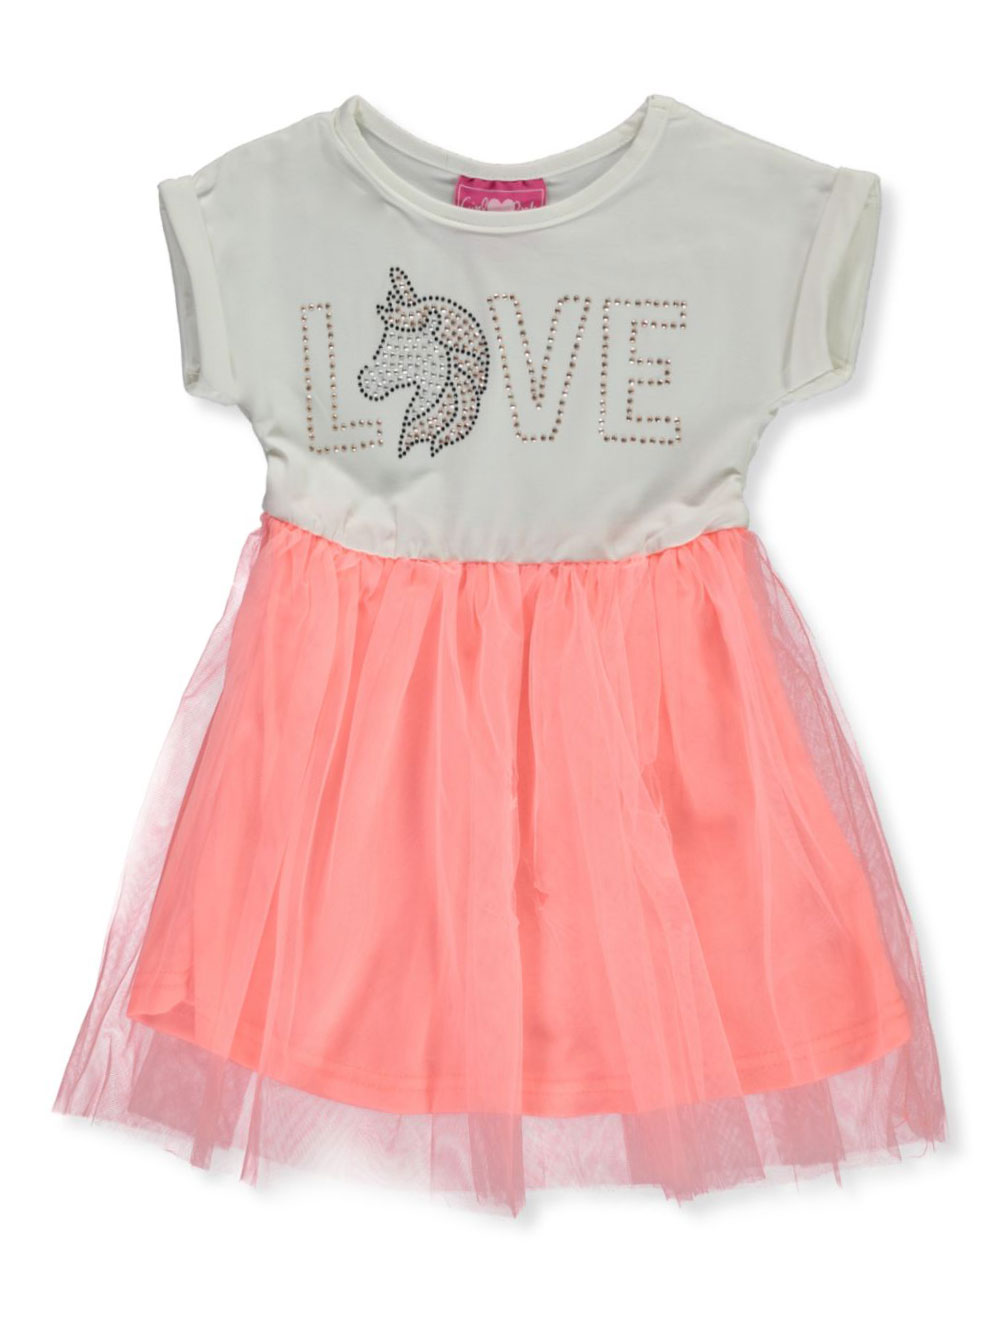 Size 12 Casual Dresses for Girls